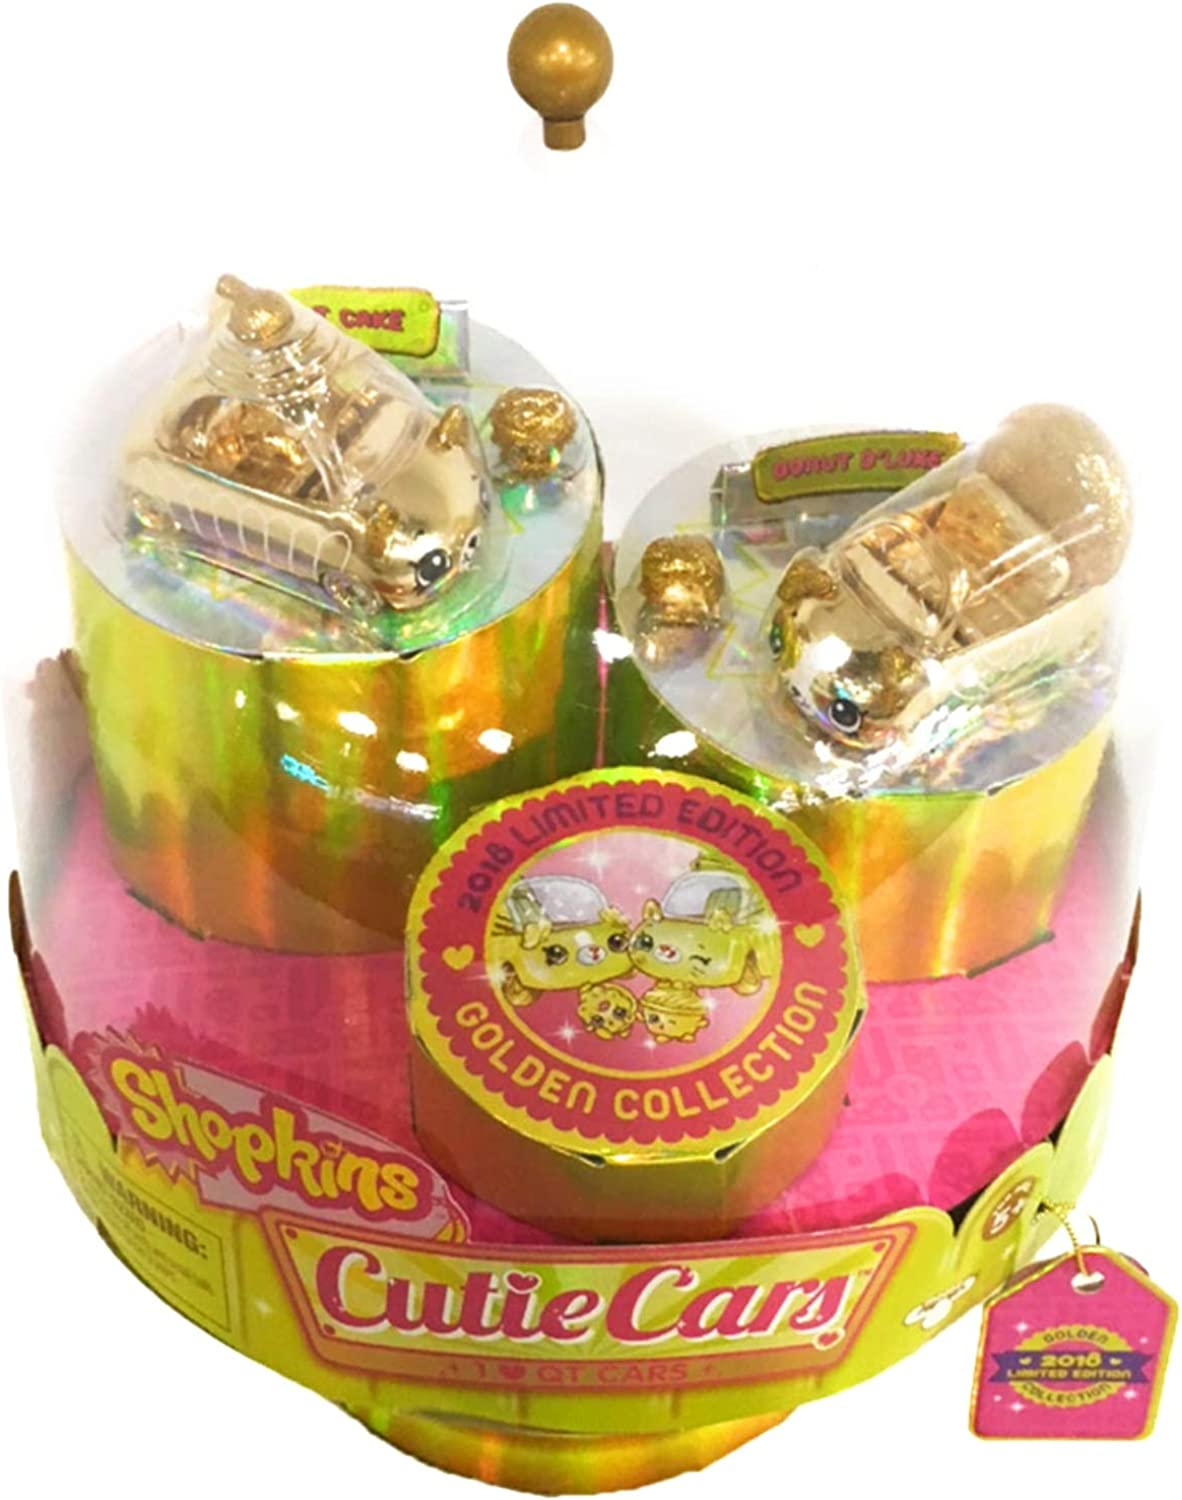 SDCC 2018 Limited Edition Exclusive   _Shopkins Cutie Cars  24 Carat Bling gold (2 Pack)